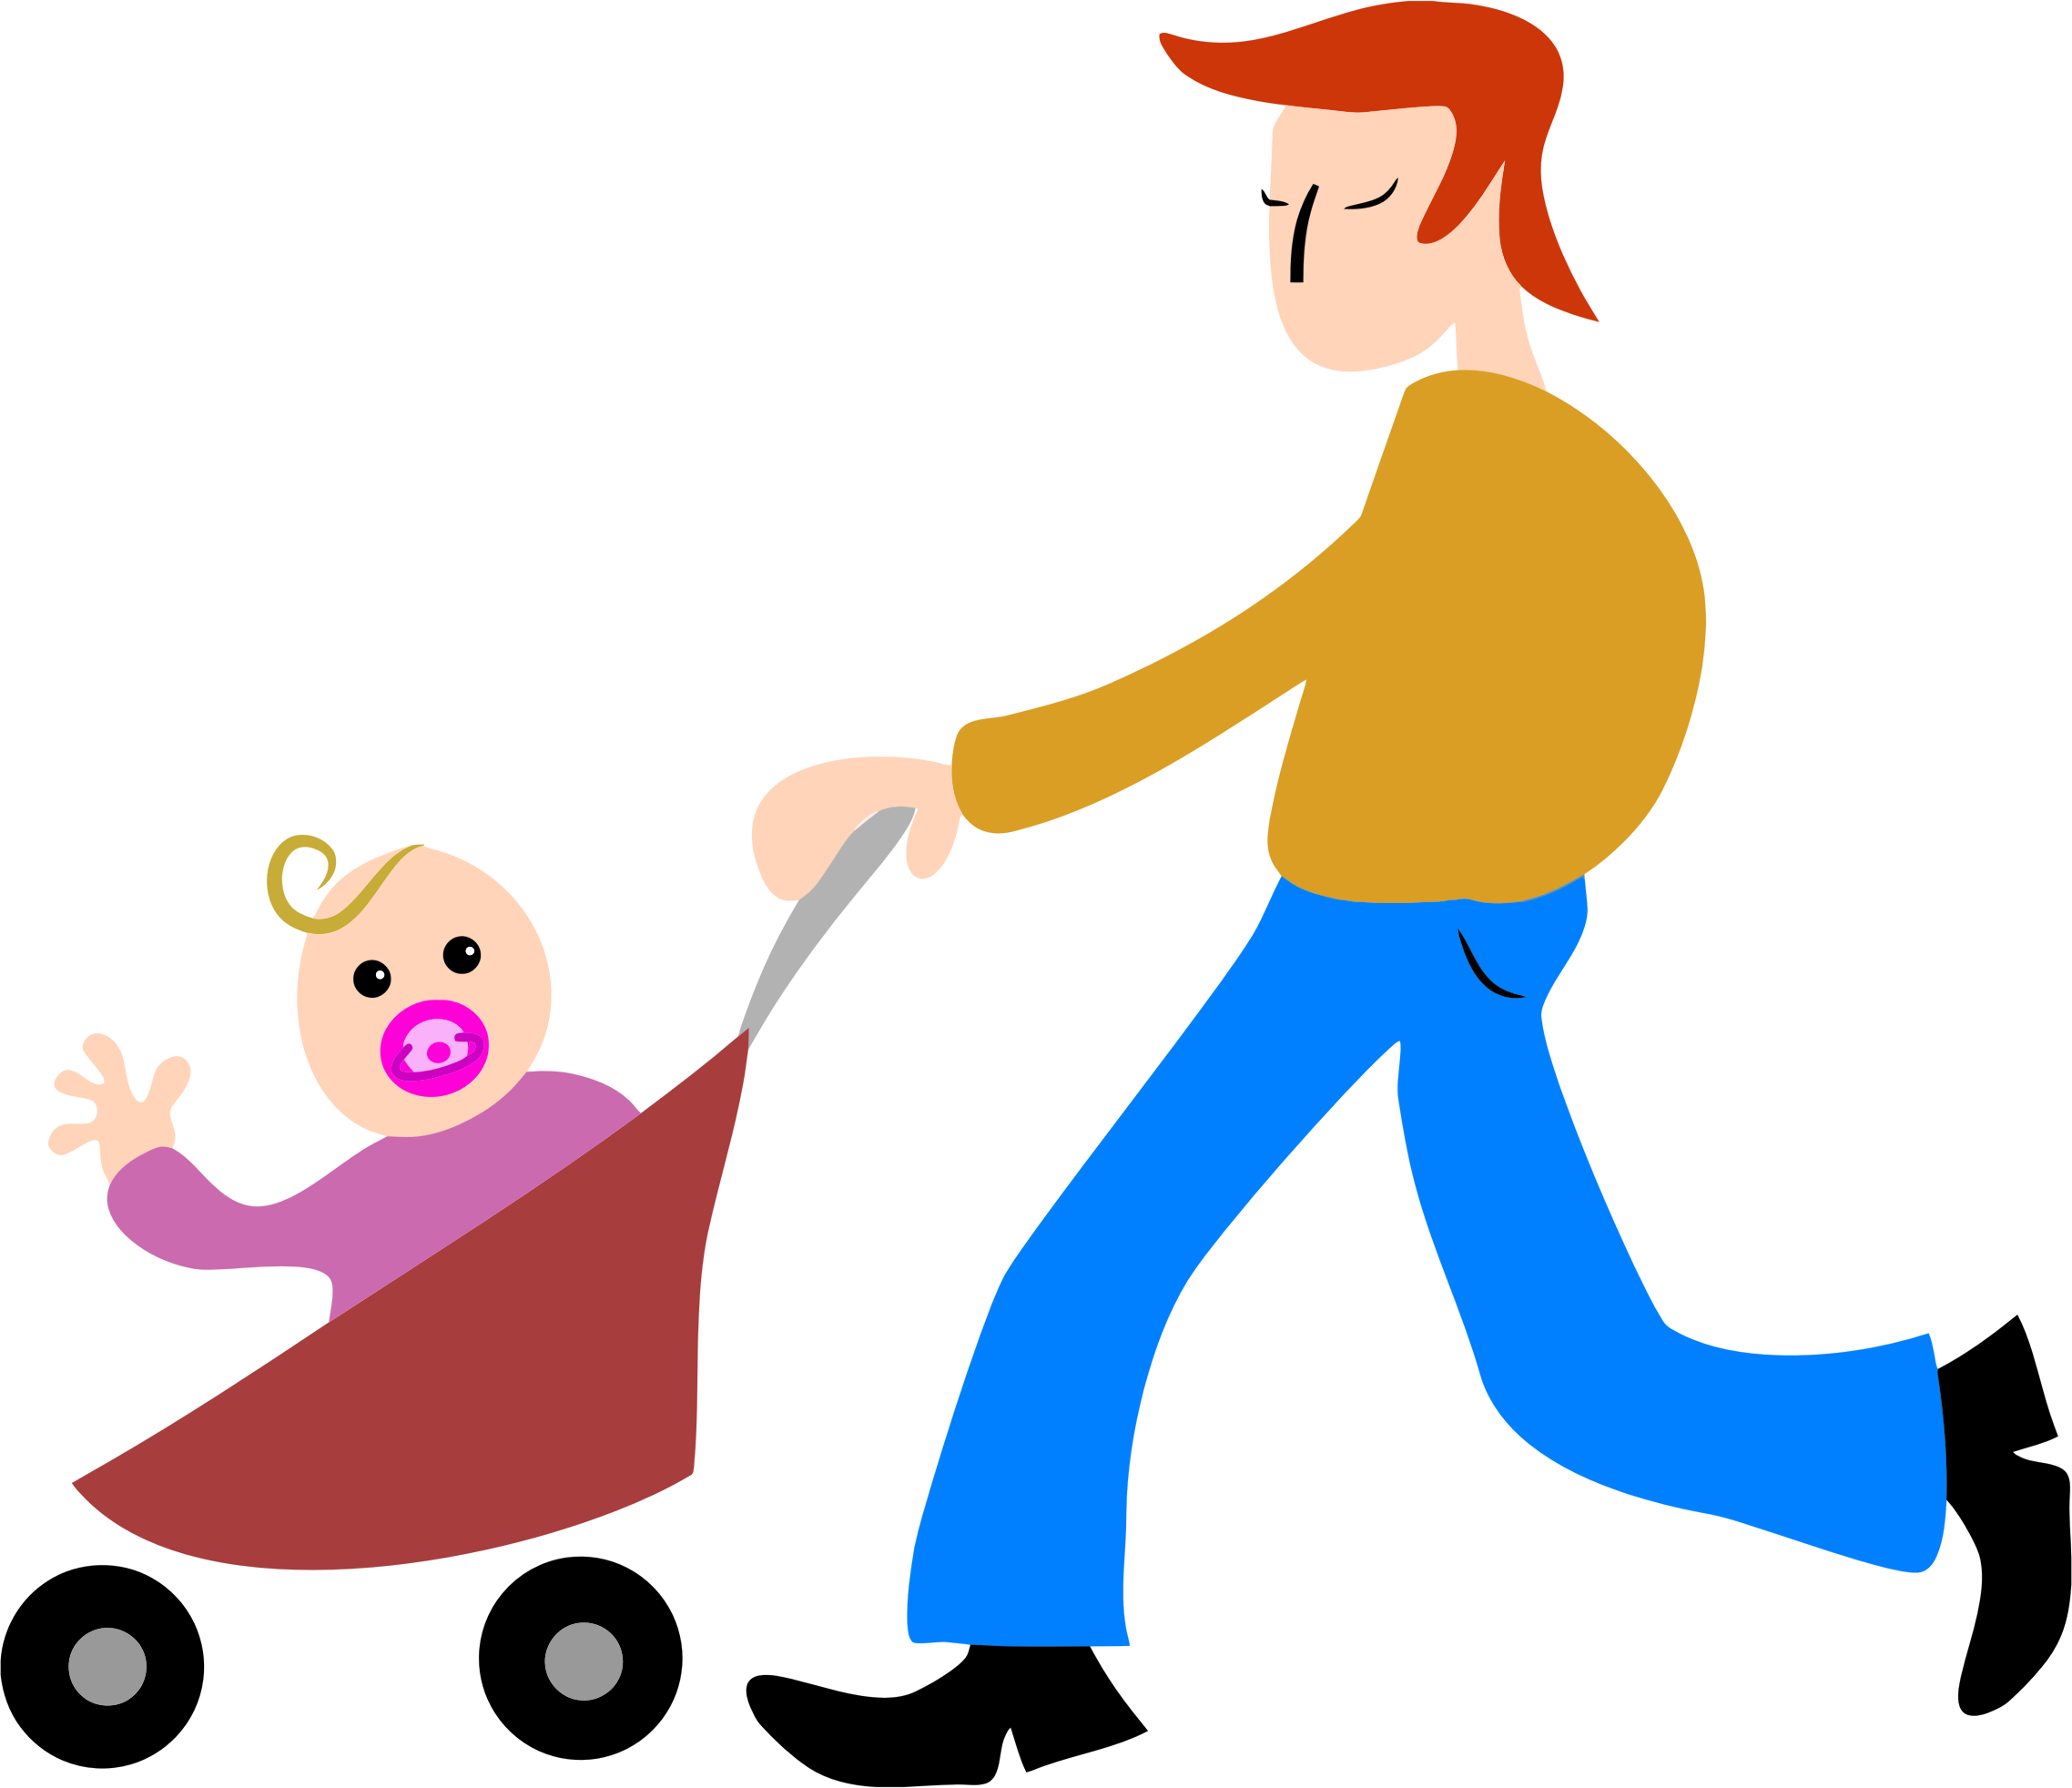 Stroller big image png. Dad clipart father and son